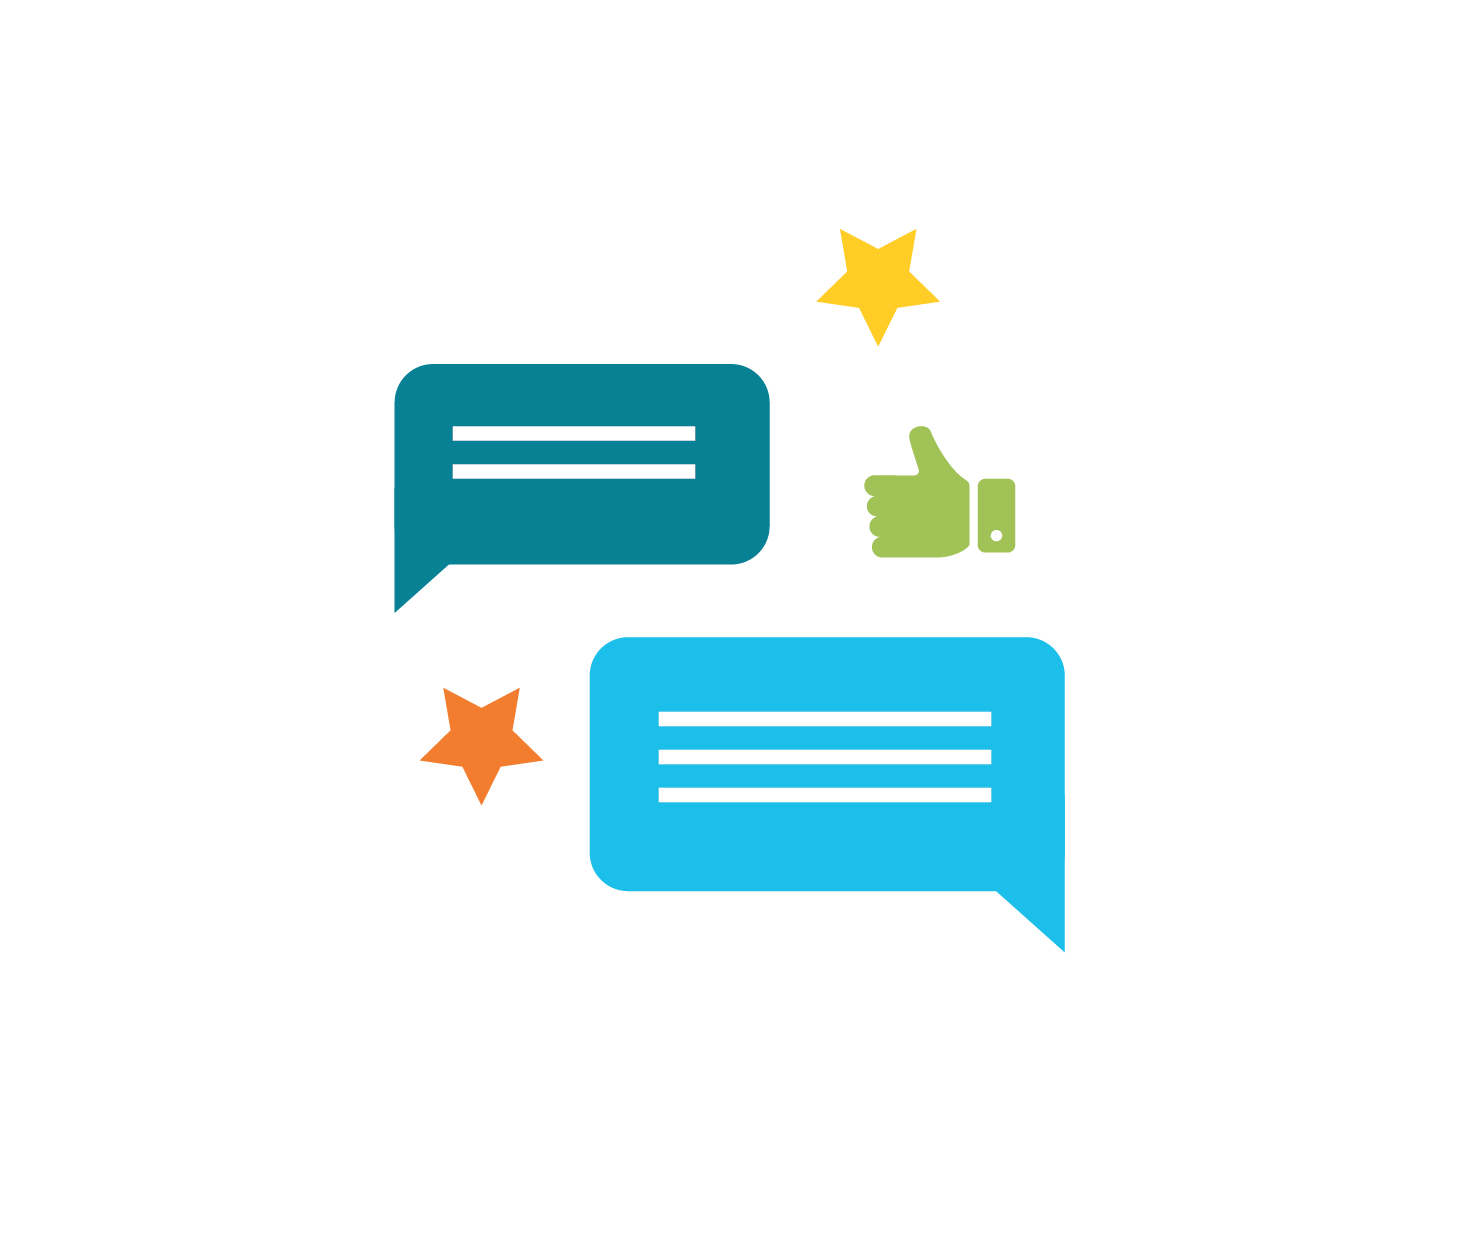 Icon of message bubbles with a thumbs up and some stars